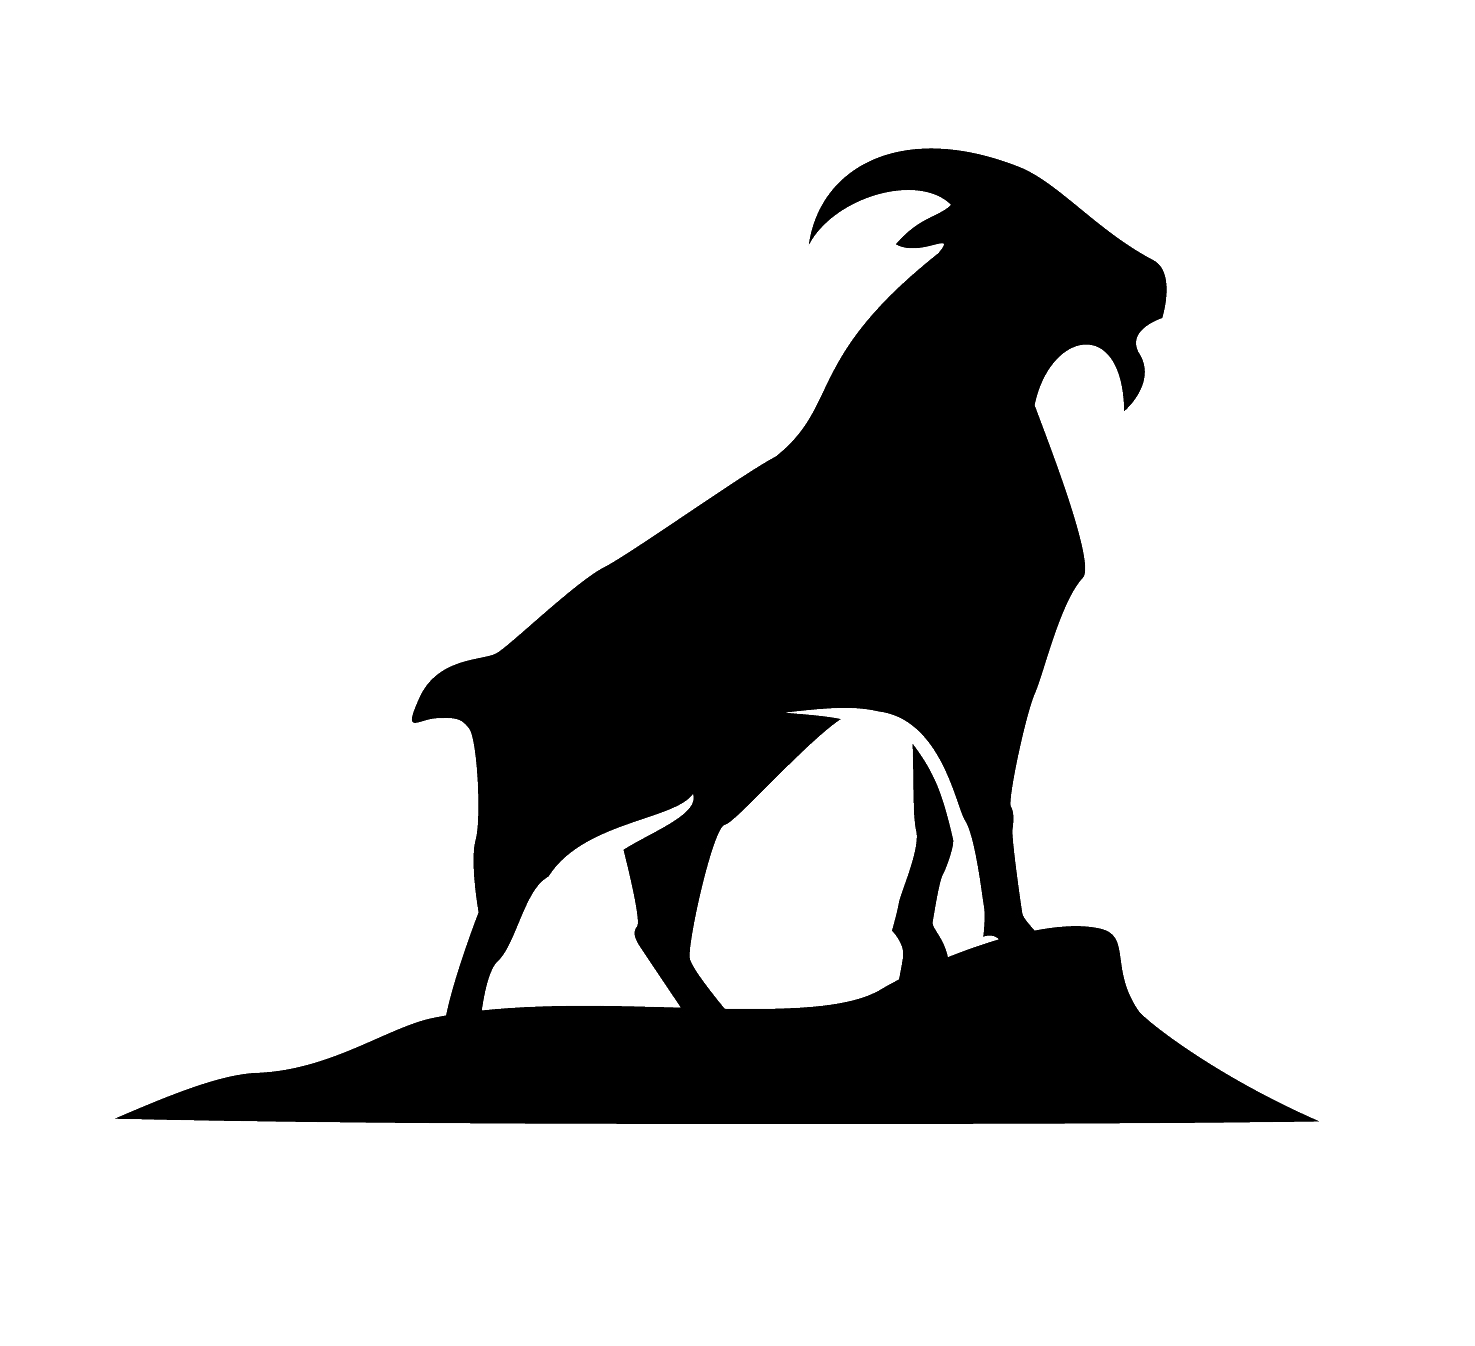 Goat silhouette png. Get your on island